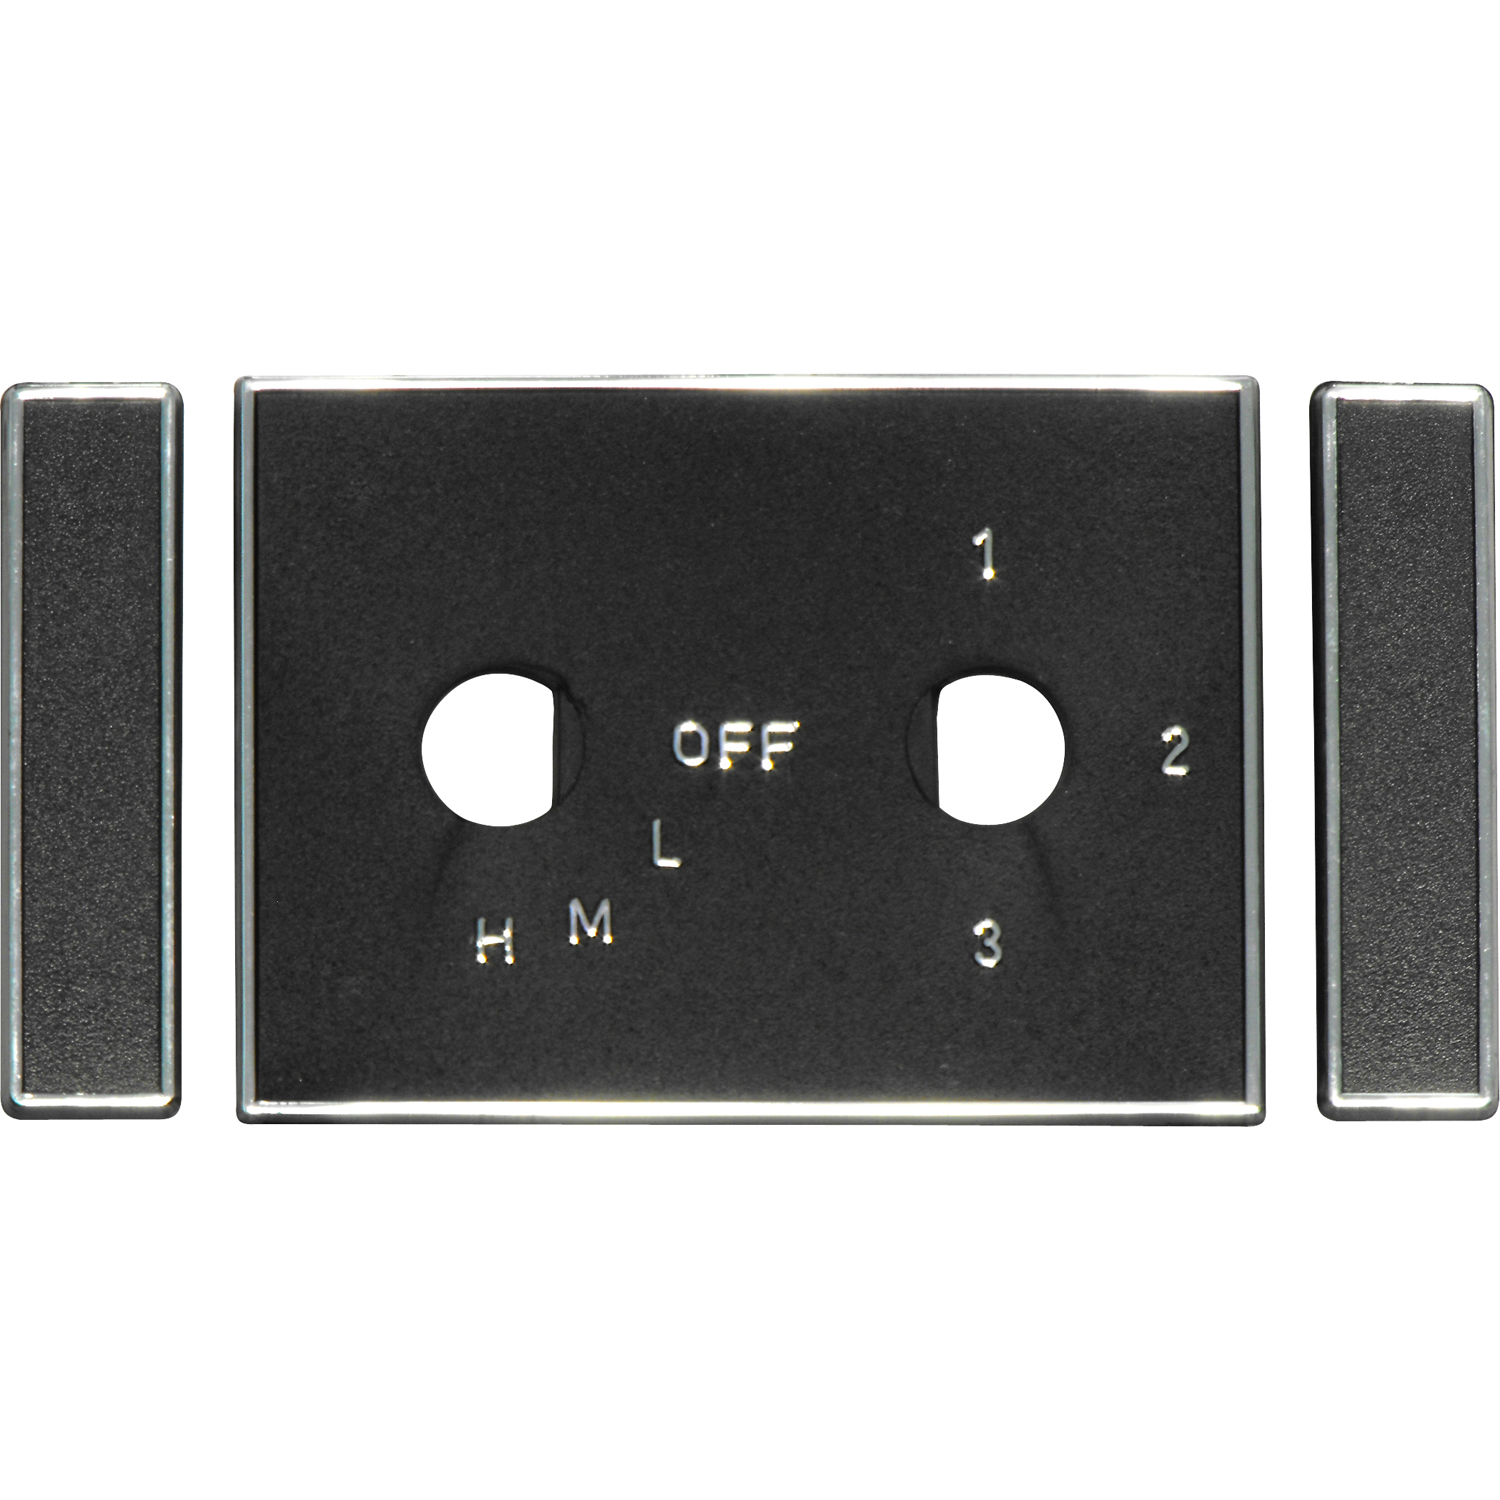 Evaporator Case SWITCH PLATE